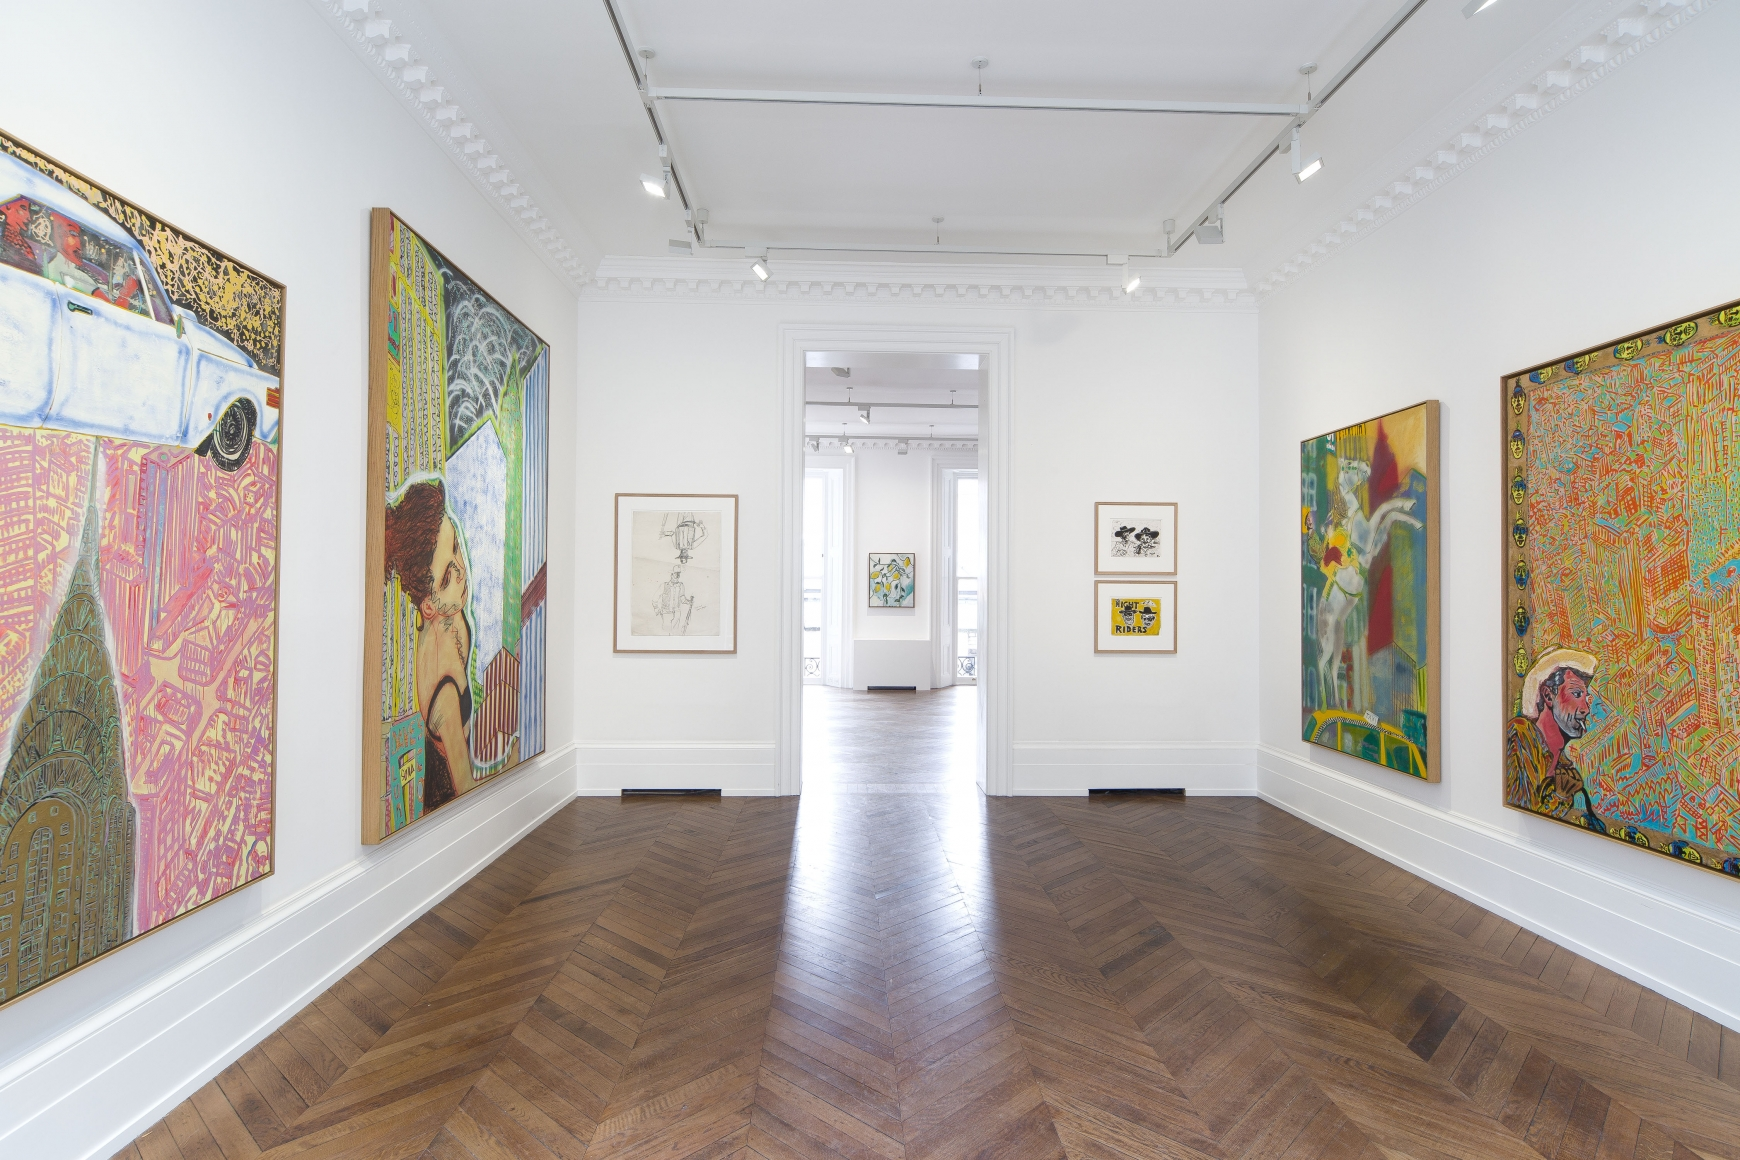 Peter Doig, Early Works, London, 2014, Installation Image 3